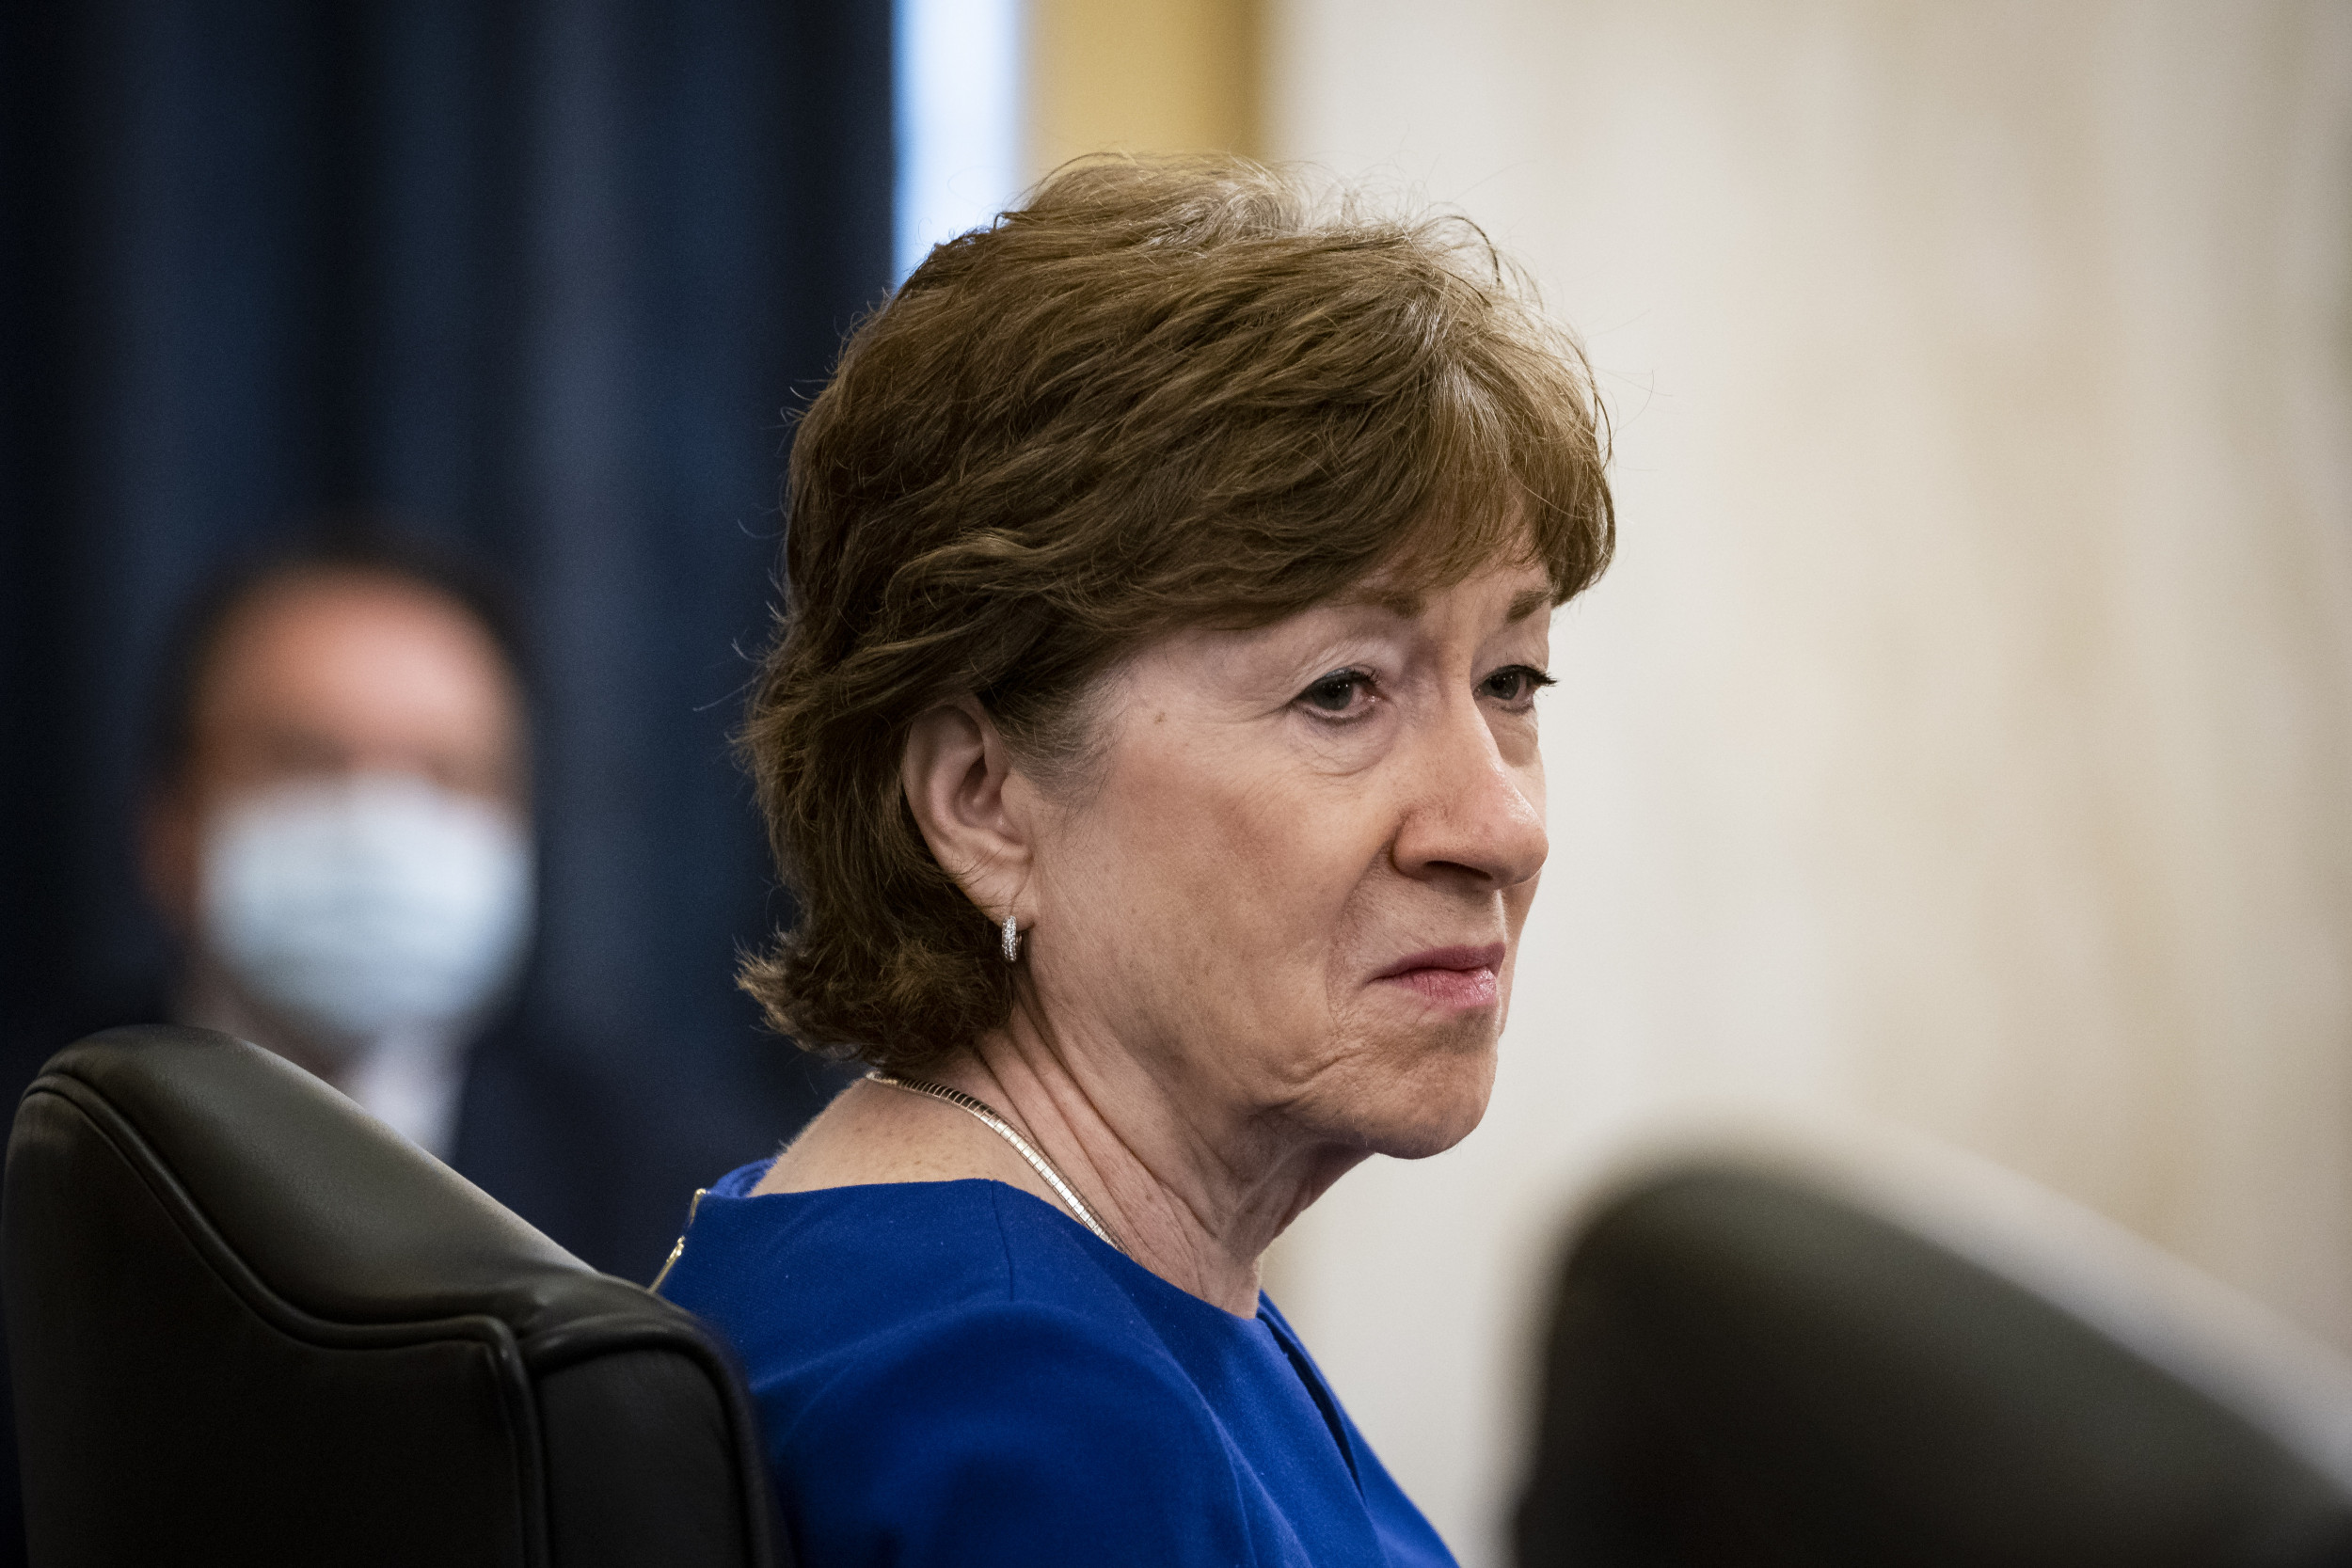 Trump-backed Collins trails Obama-endorsed Gideon in Maine Senate race